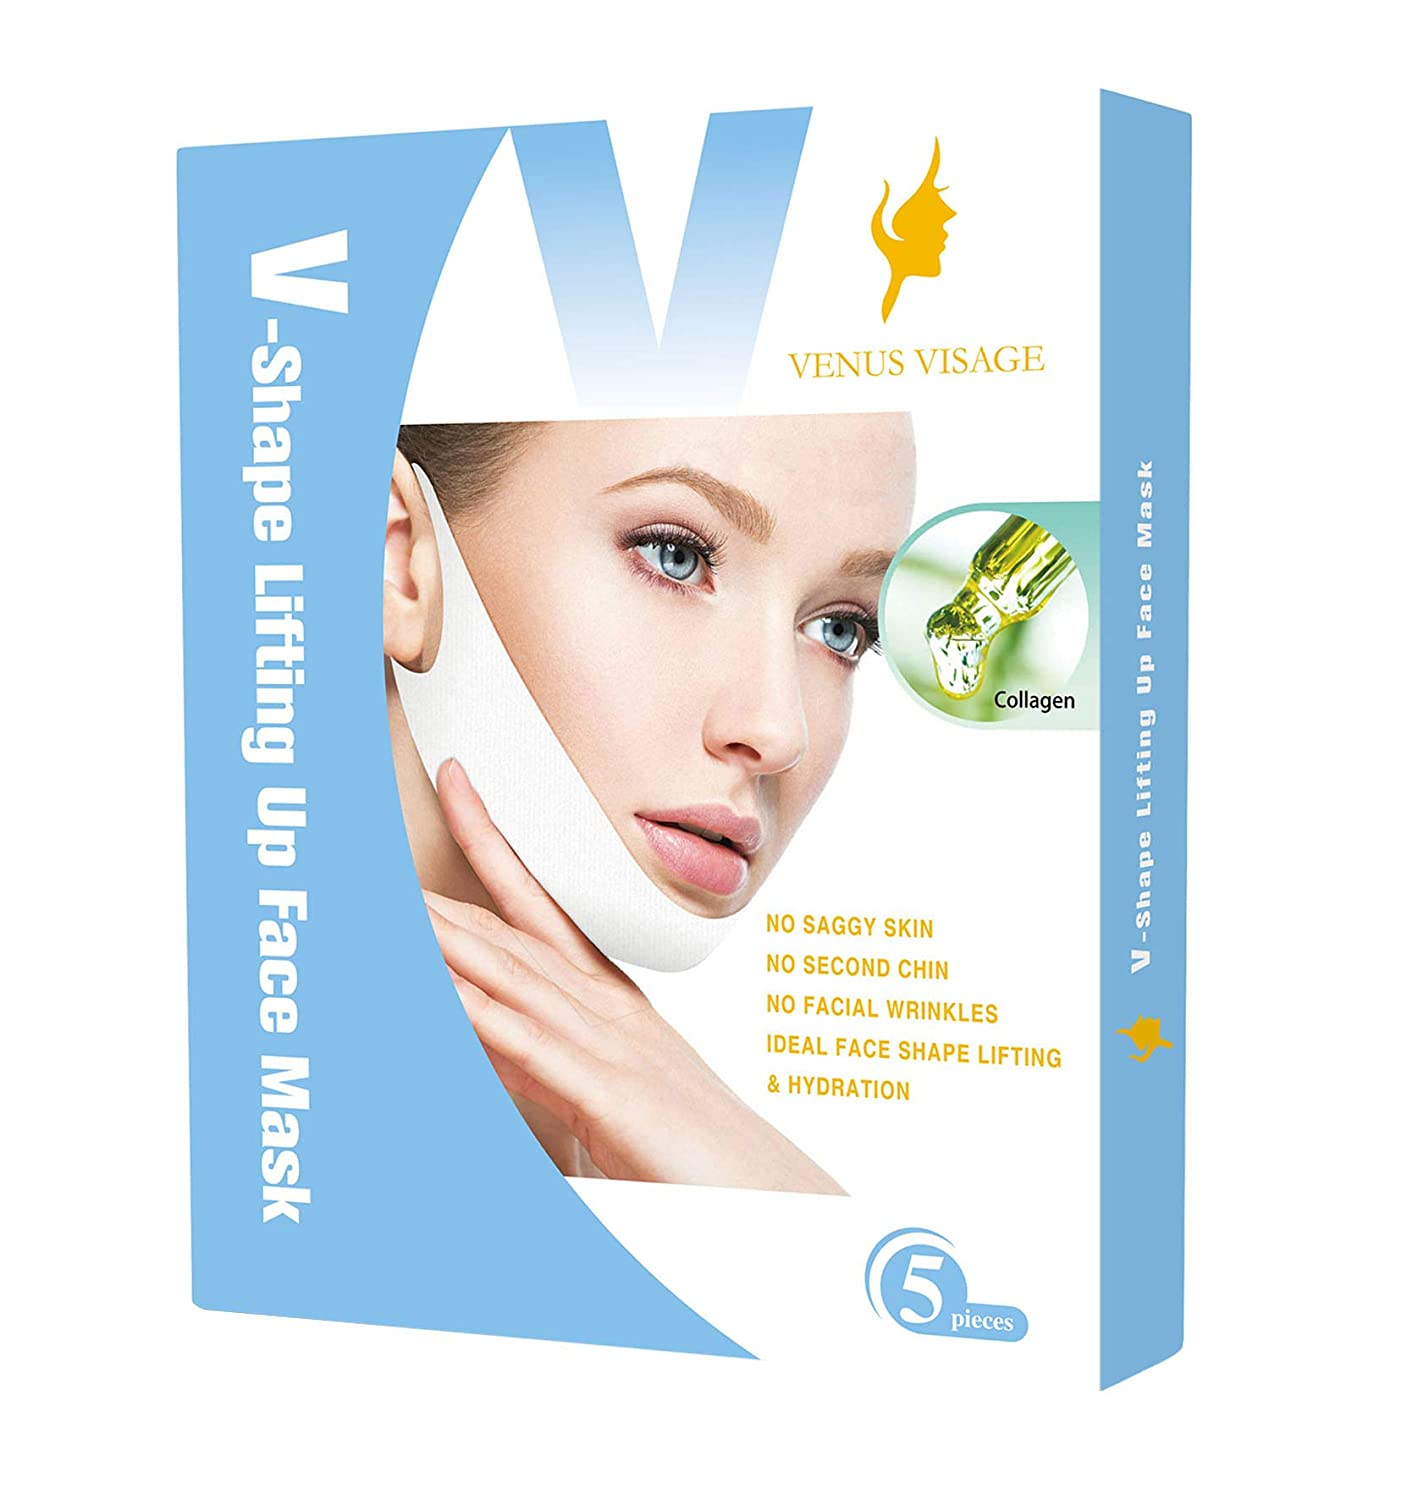 V Line Mask, Chin Up Patch, Double Chin Reducer, V-Shape Lifting Up Face Mask - Anti-Age Face Slimming Lifting Patch - V-Line Anti Wrinkle Firming Moisturizing Tape Mask - Pack of 5 Masks